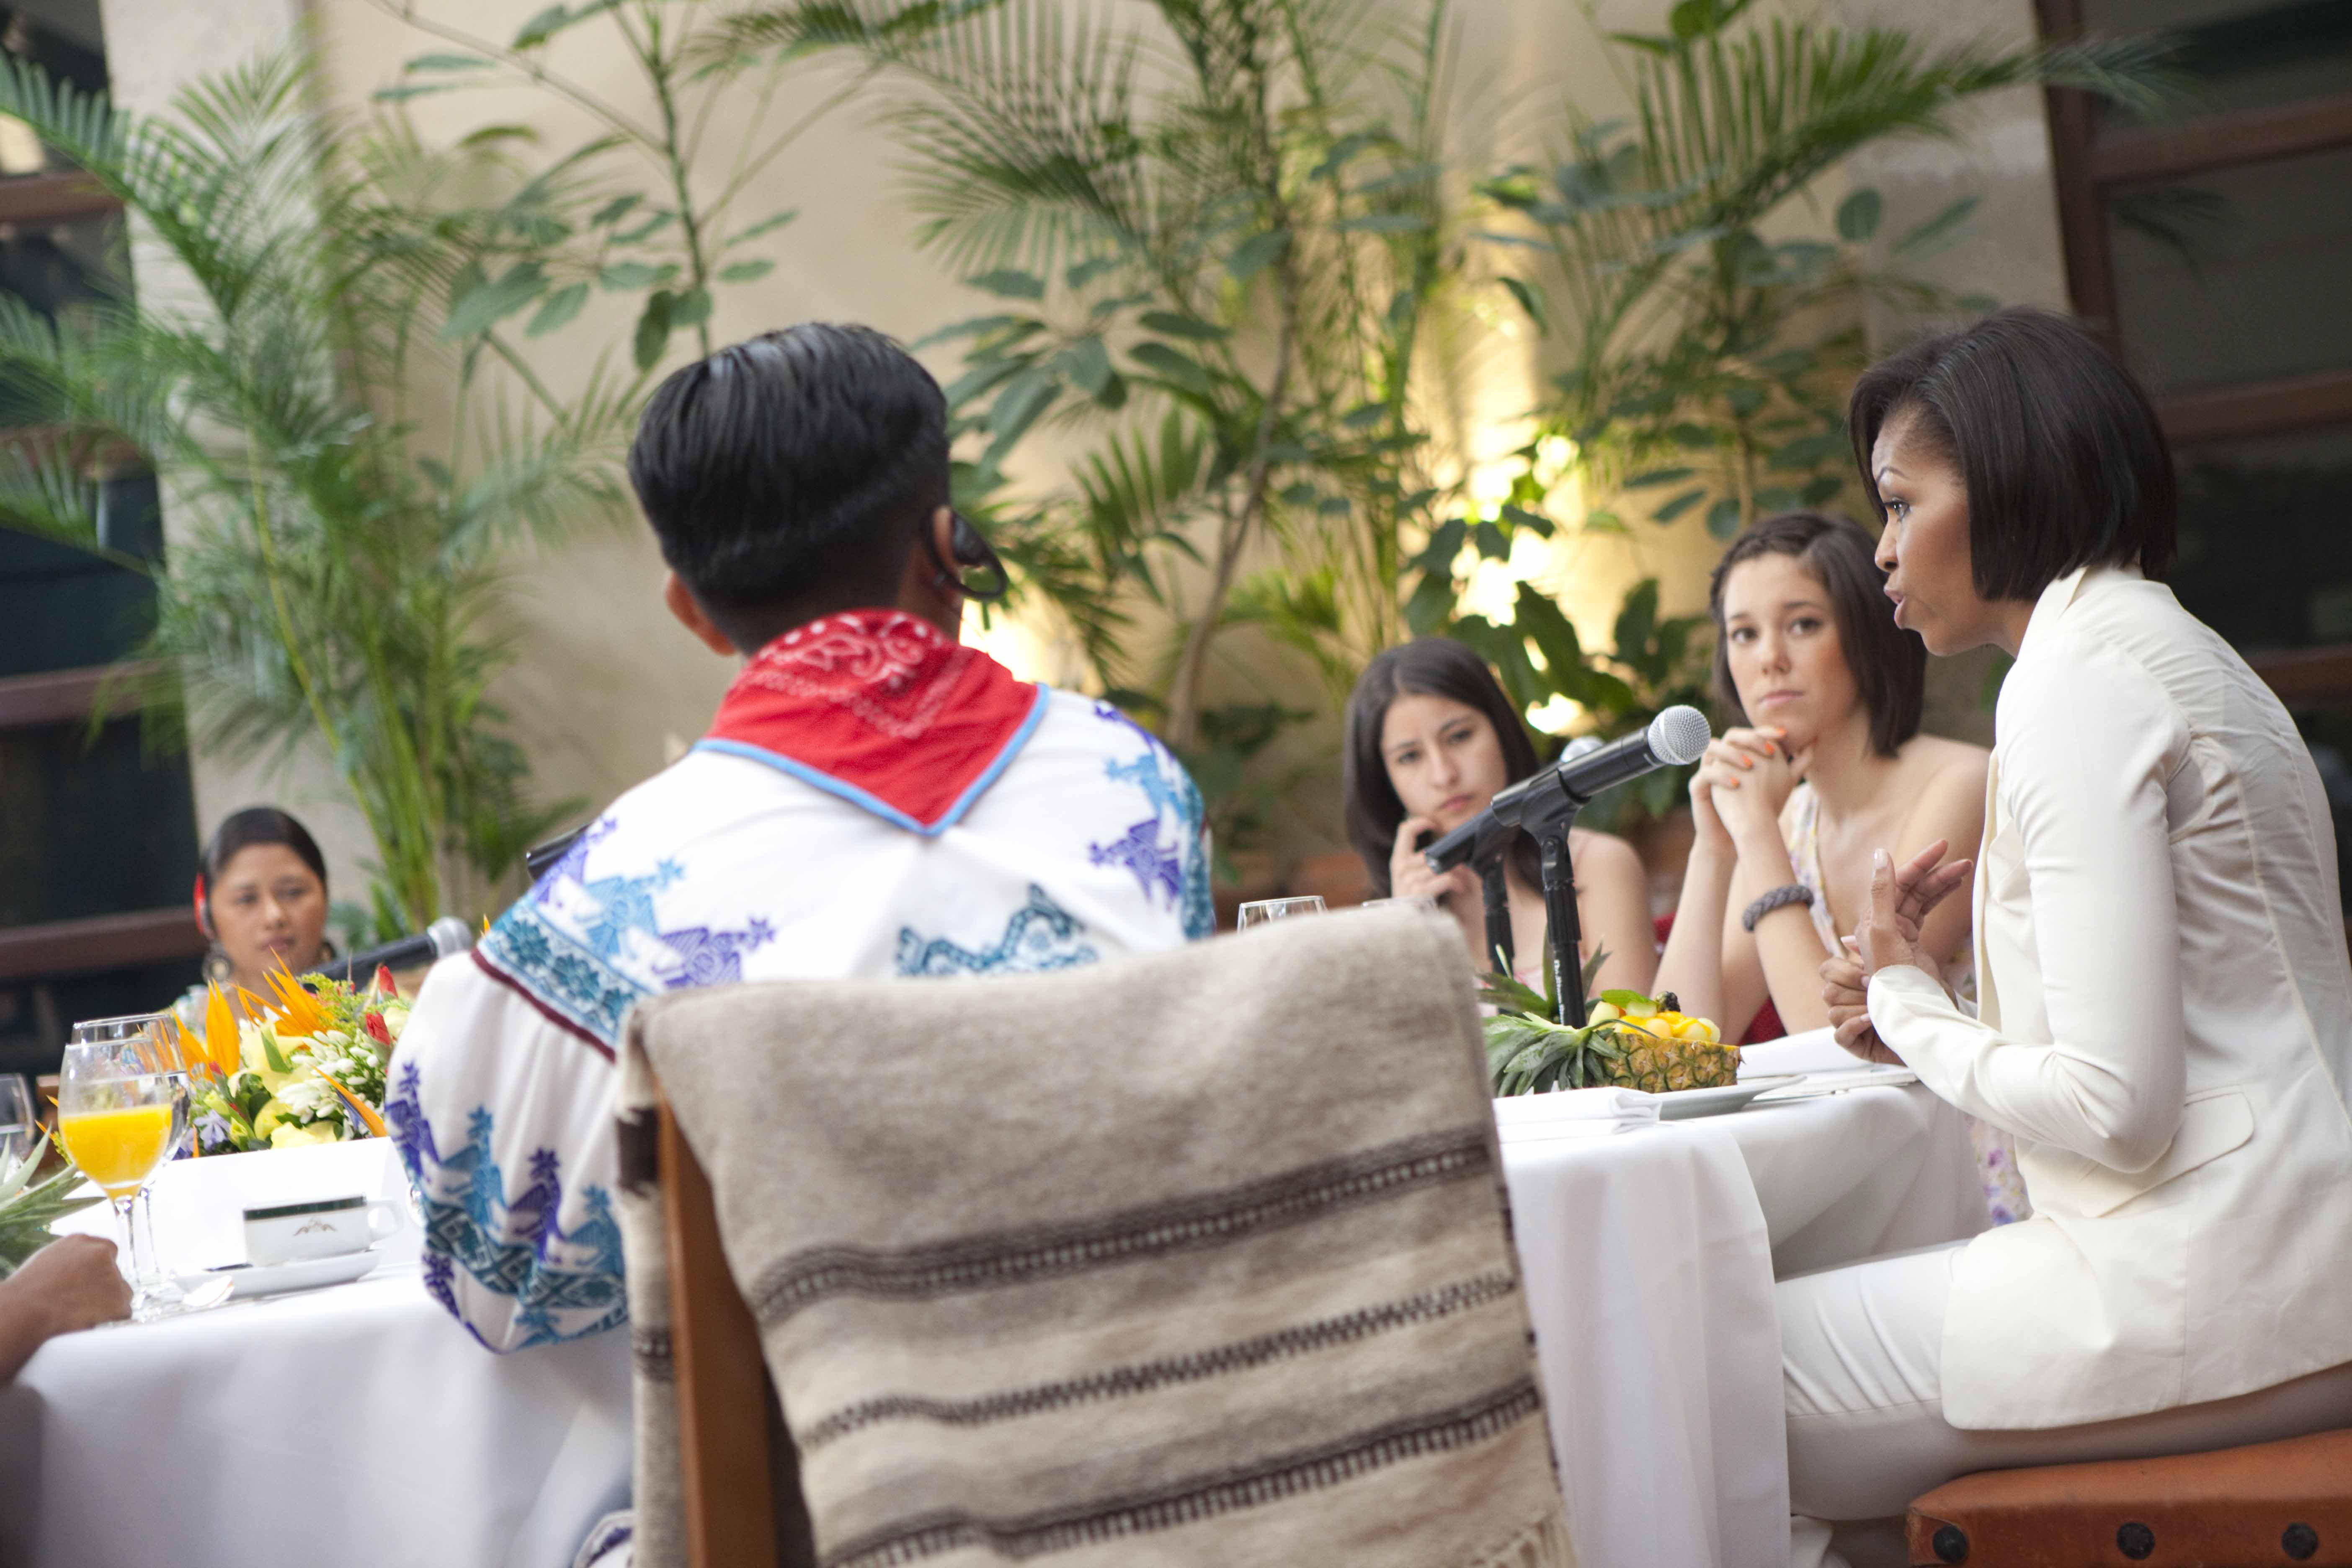 First Lady Hosts Roundtable in Mexico